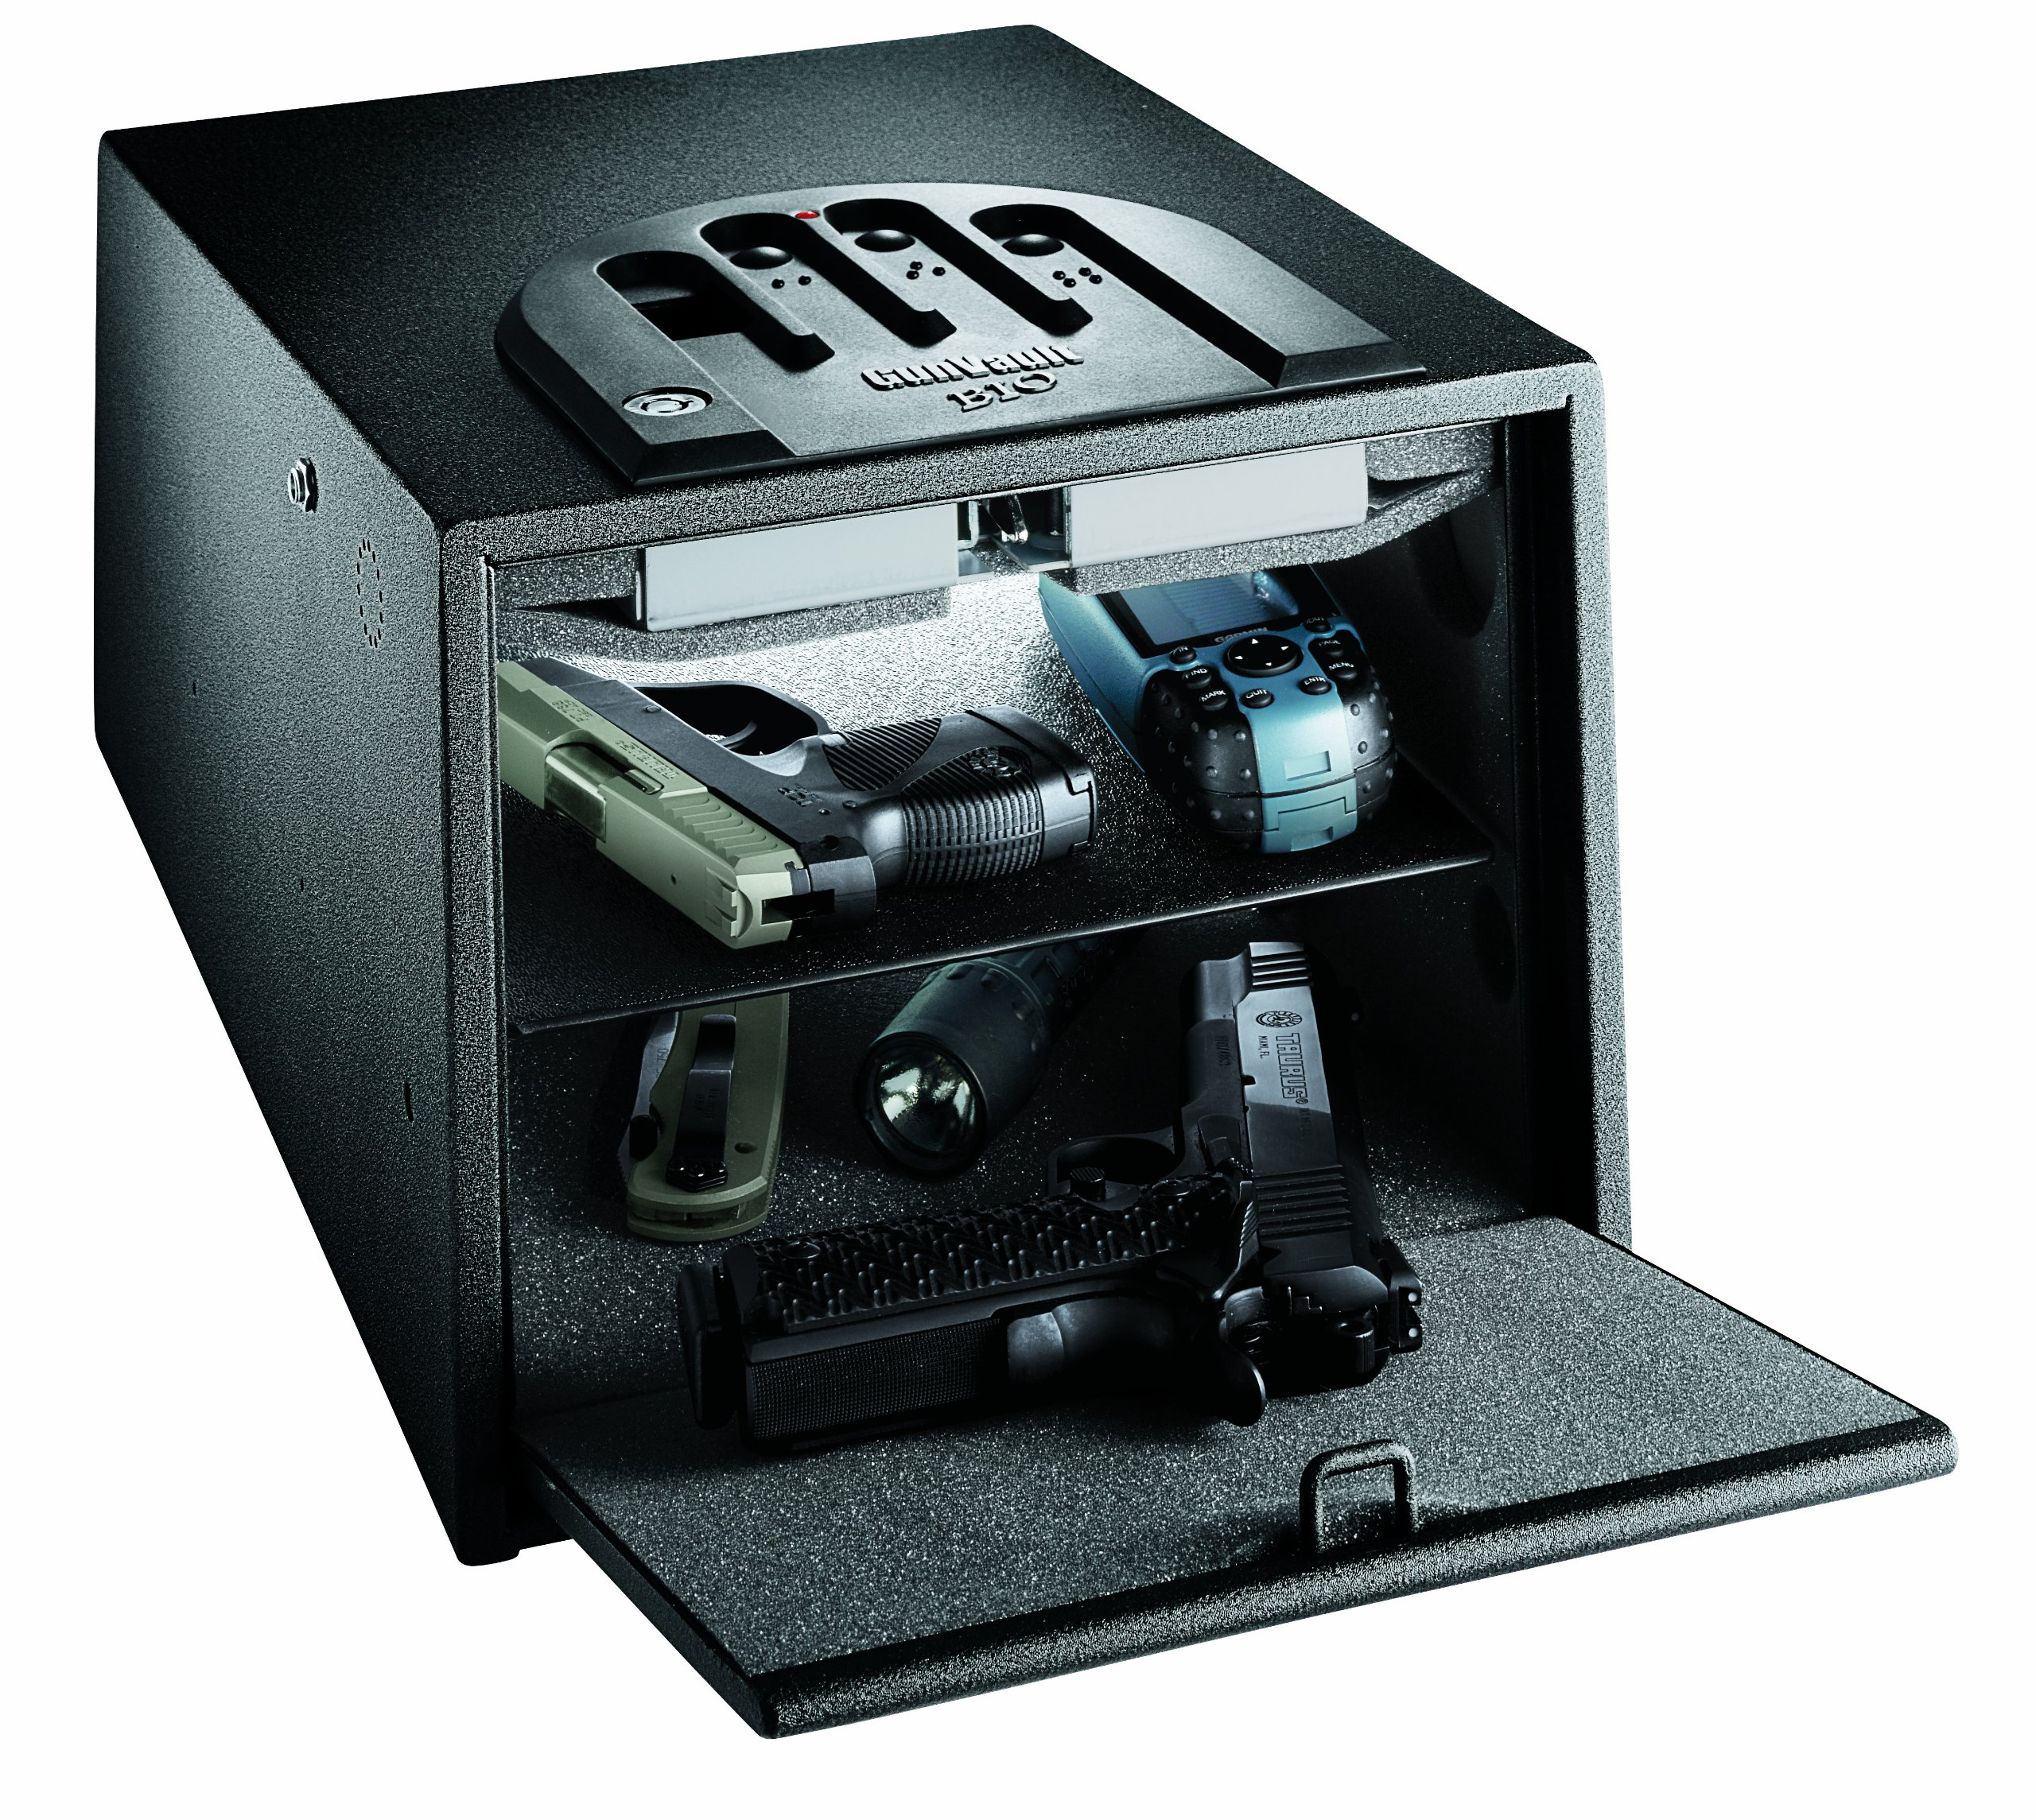 Gunvault GVB2000 Multi Vault Biometric Gun Safe